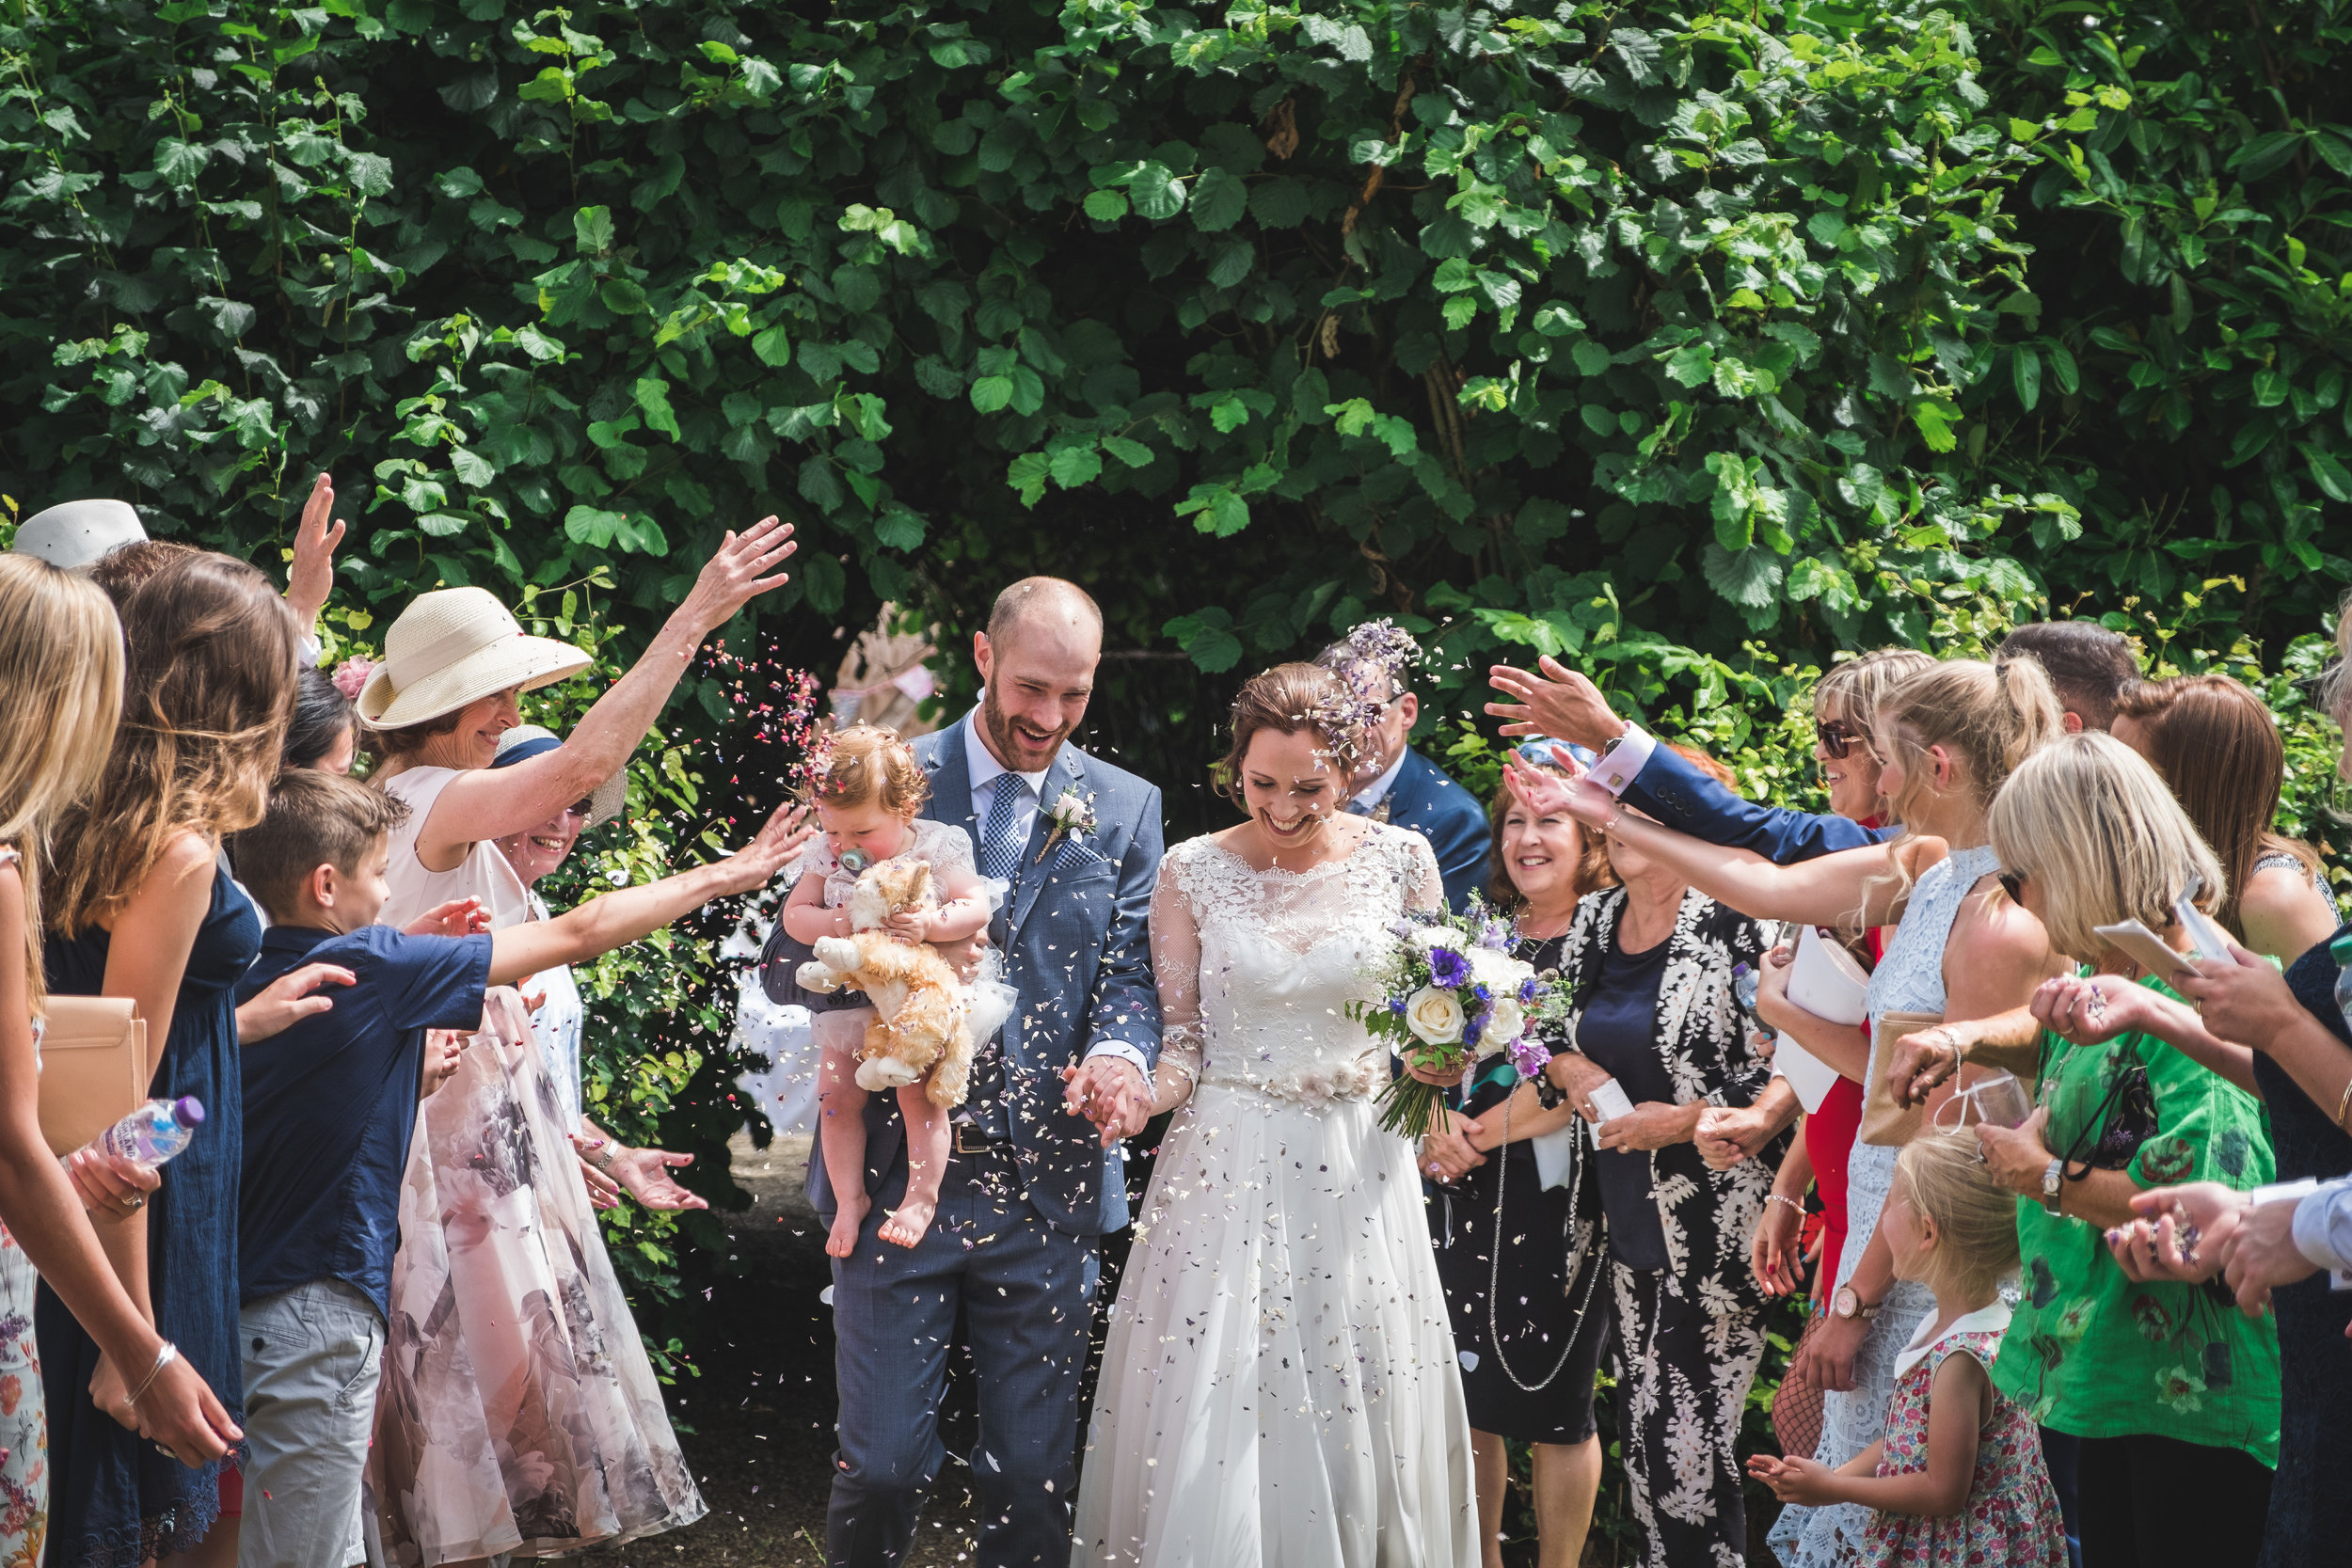 We've received our photos back from our wedding and they are absolutely stunning. Jim was so calm and professional on the day and knew exactly what would look good for the style of photos we wanted. We are so happy with them!   Eliza & Tim Young, Newbury